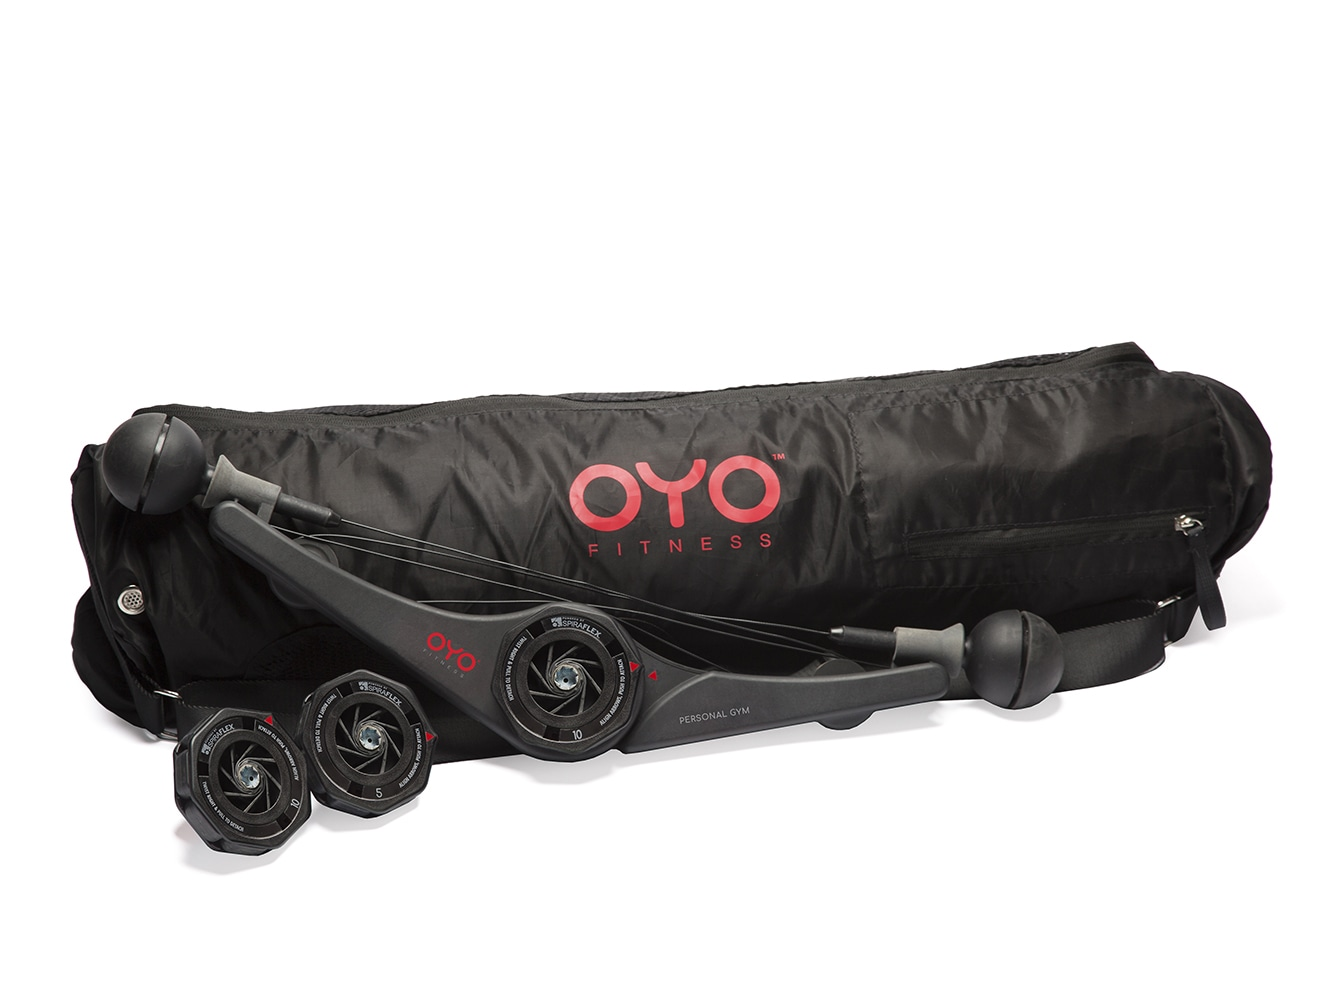 OYO Personal Gym LE + Shoulder Bag